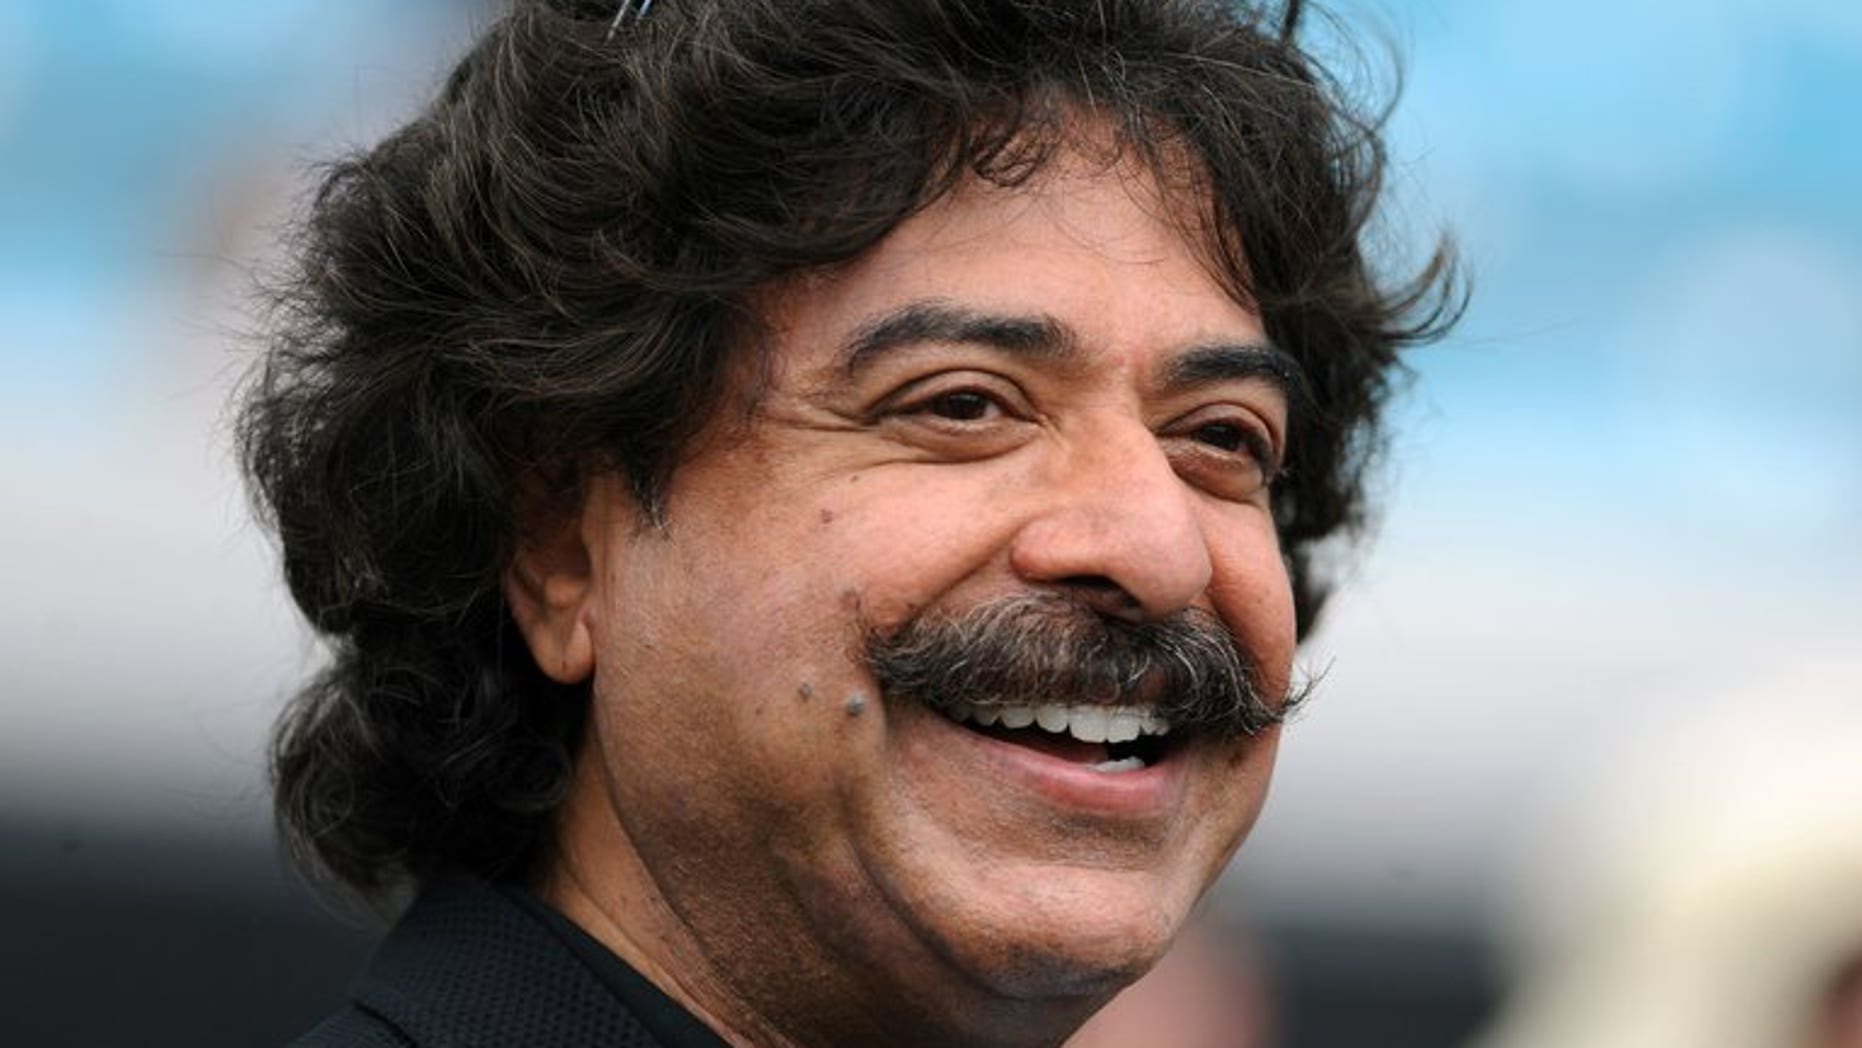 Fulham's new owner Shahid Khan, pictured in Jacksonville, Florida on September 16, 2012, has vowed to build on the foundations left by Mohamed Al Fayed.